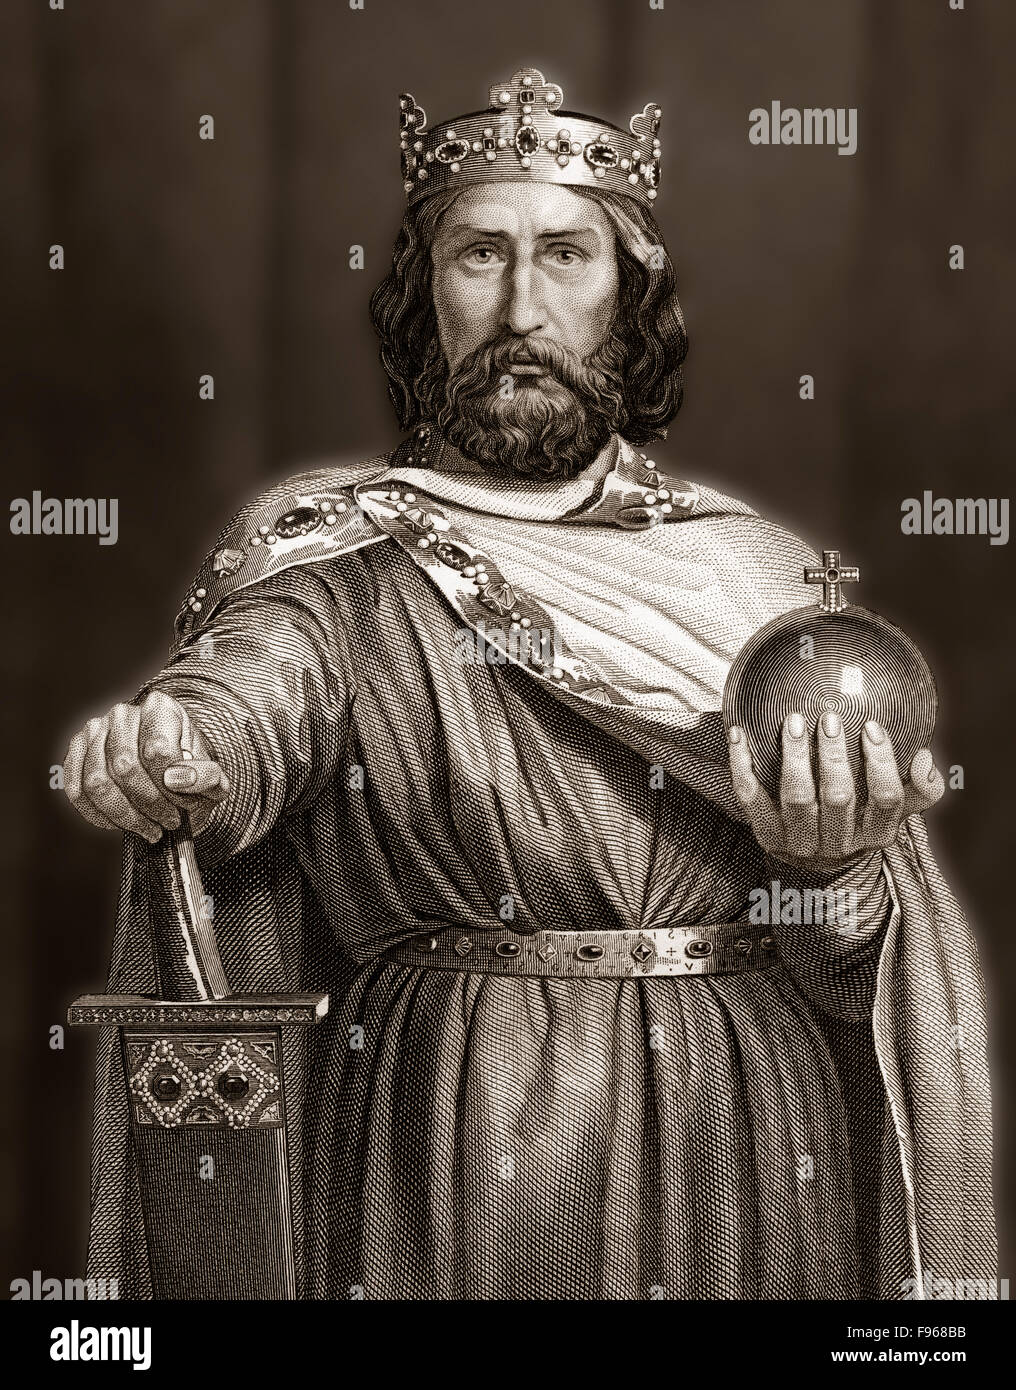 Charlemagne, wearing the Imperial Regalia, Charles the Great or Carolus Magnus, 747-814, King of the Franks - Stock Image